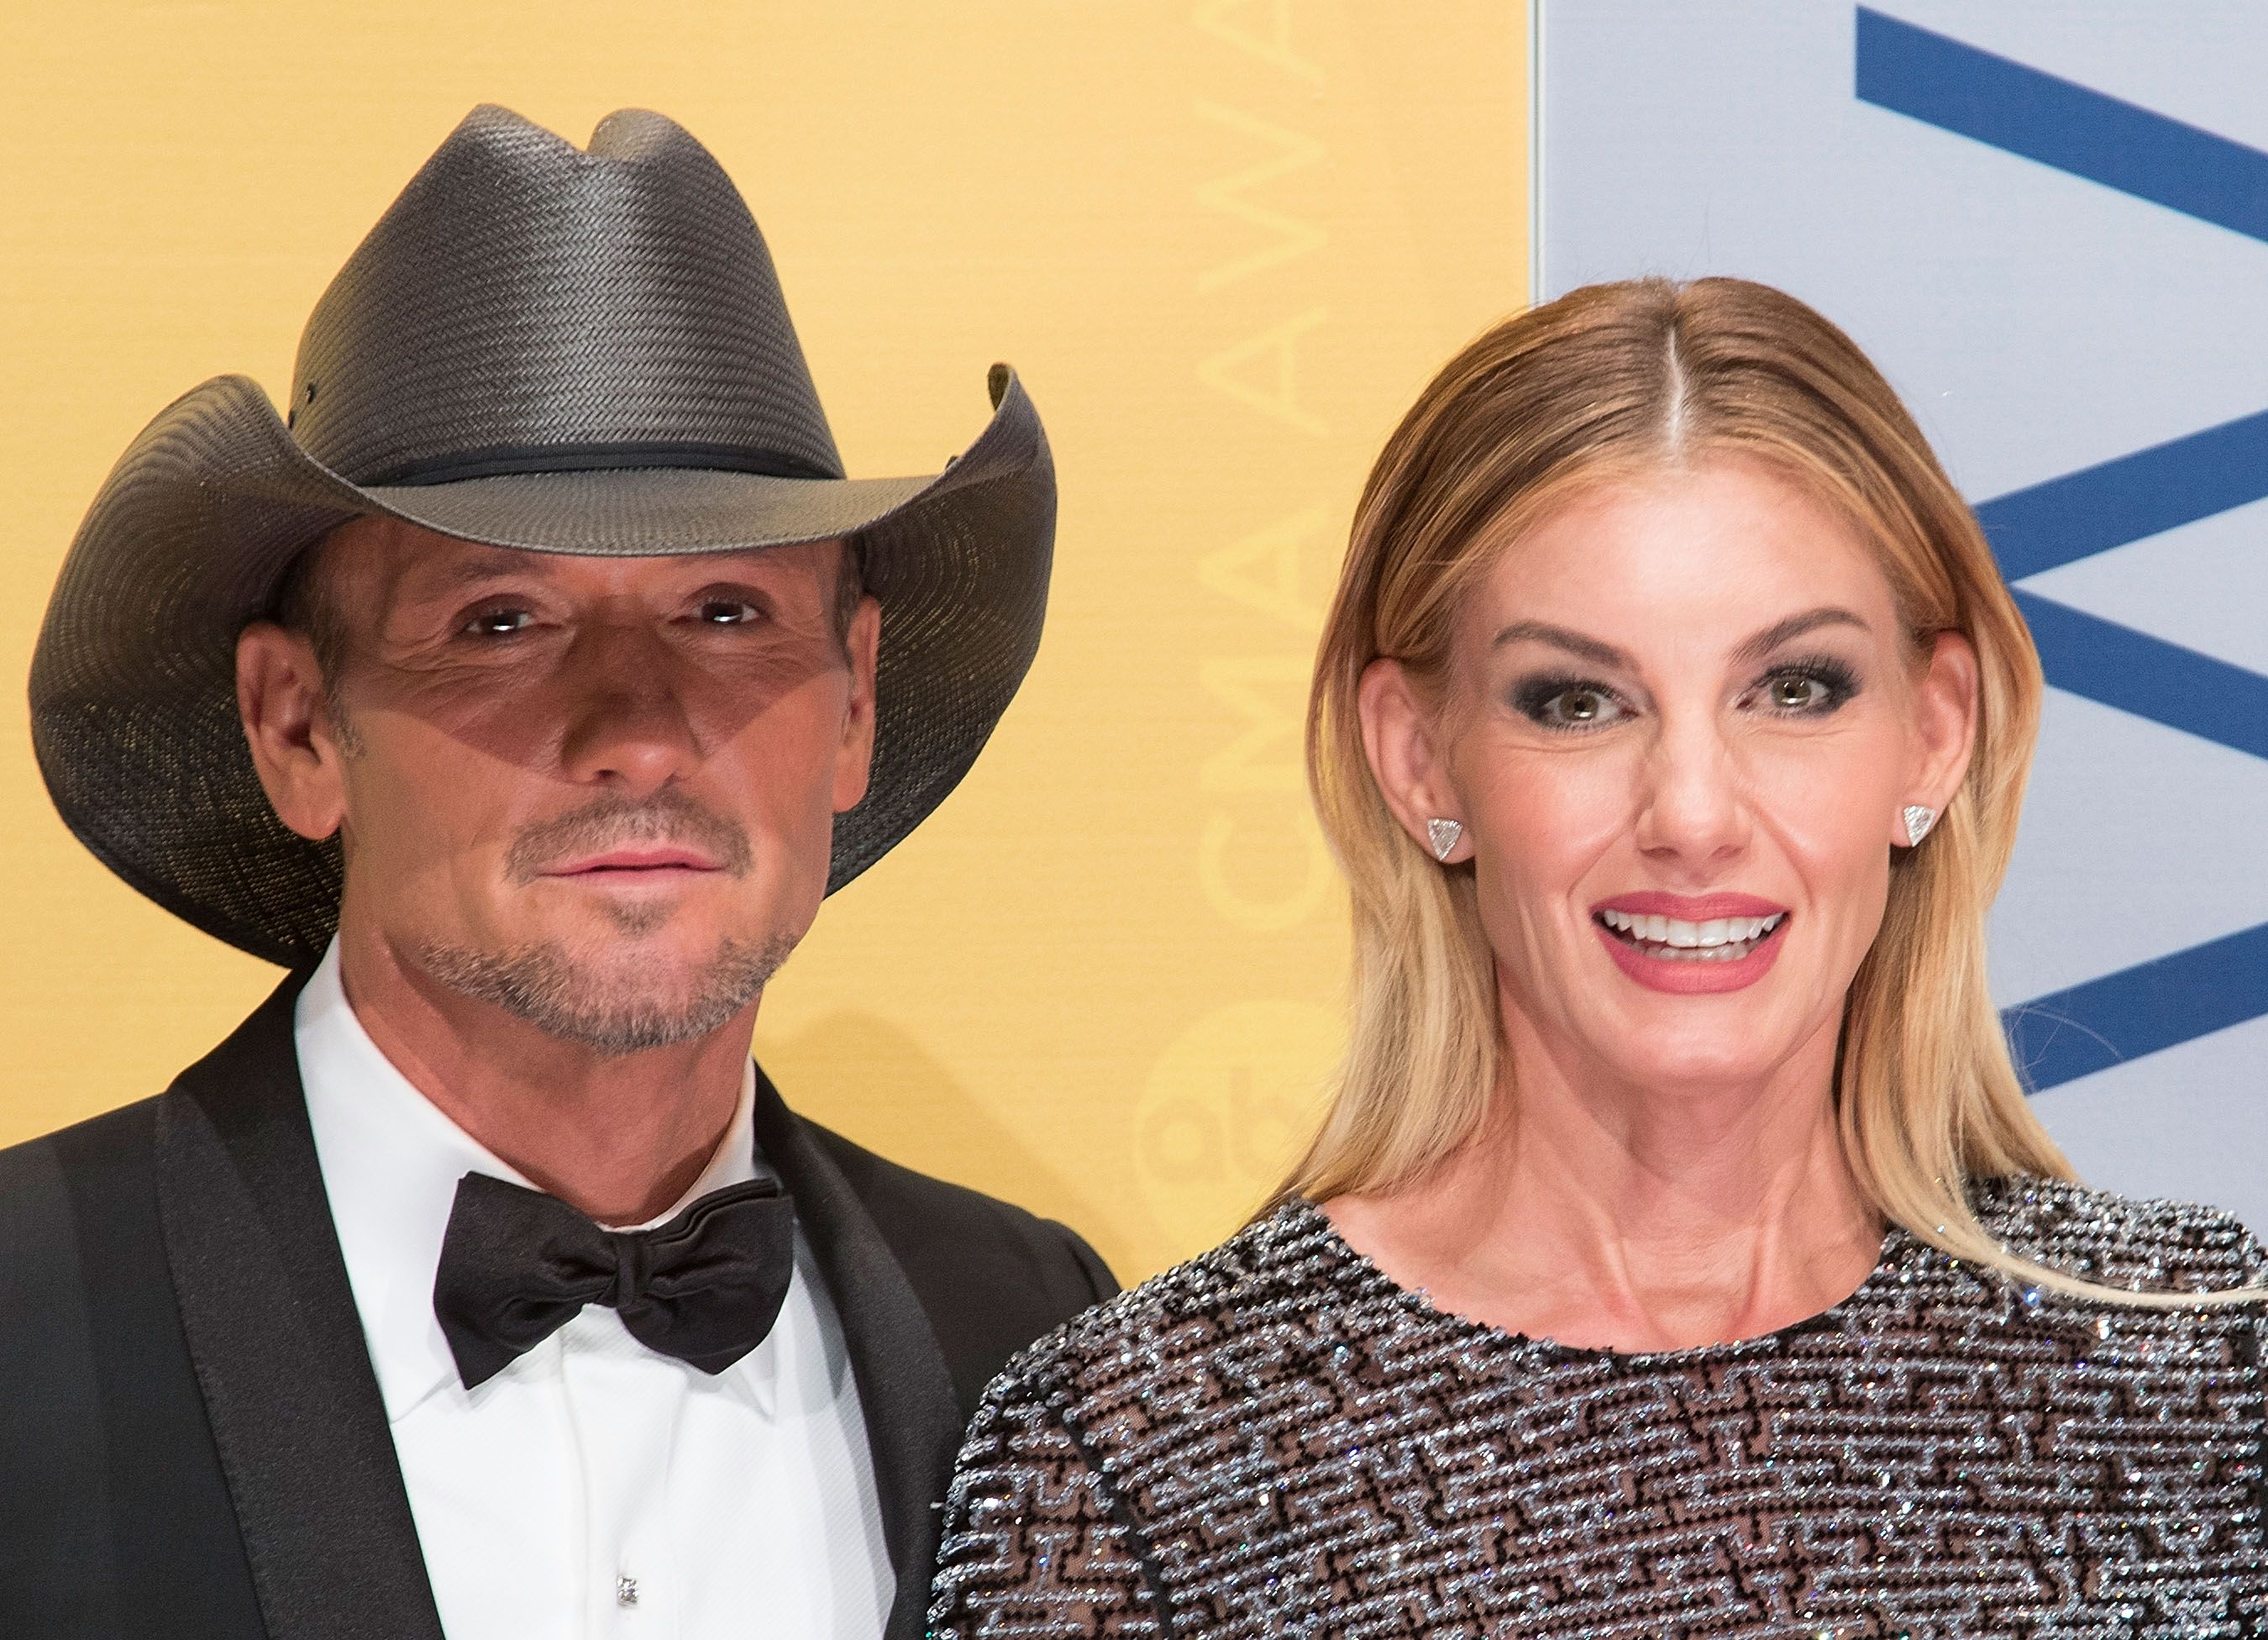 Tim McGraw and Faith Hill during the 50th annual CMA Awards at the Bridgestone Arena on November 2, 2016 in Nashville, Tennessee. | Source: Getty Images